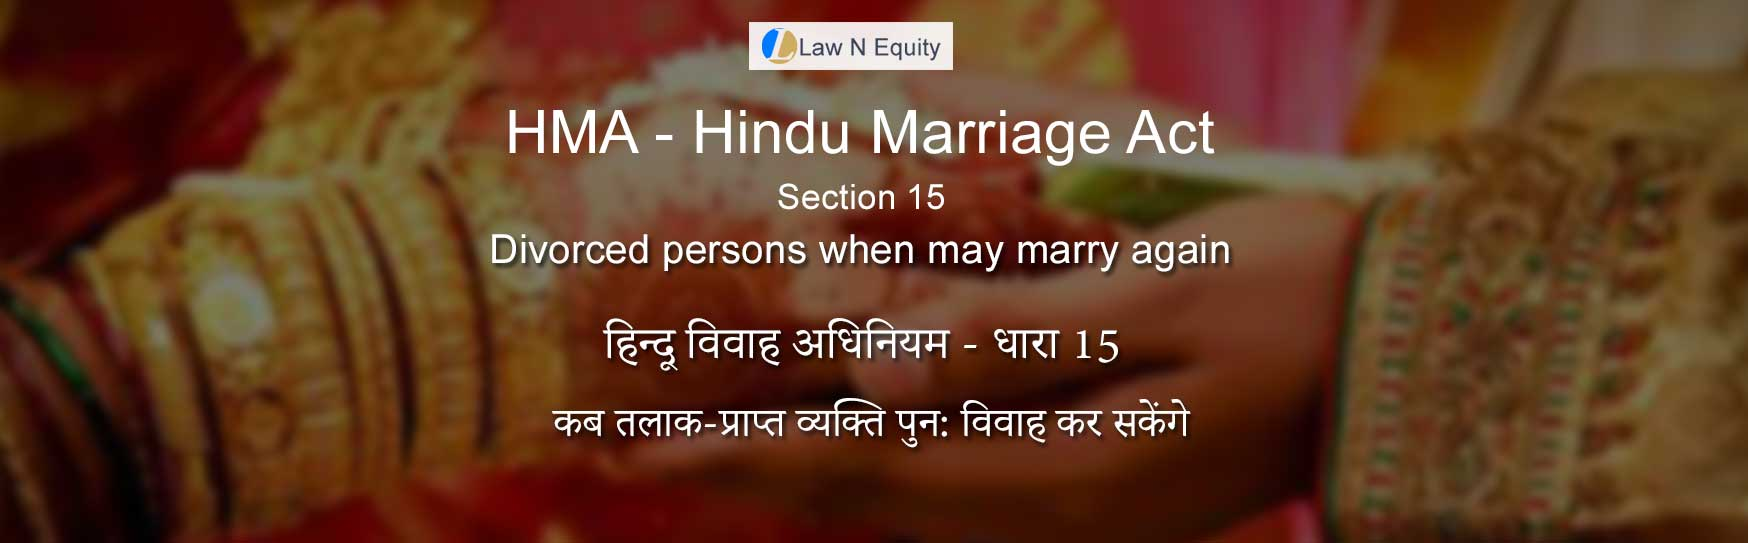 Hindu Marriage Act(HMA) Section 15